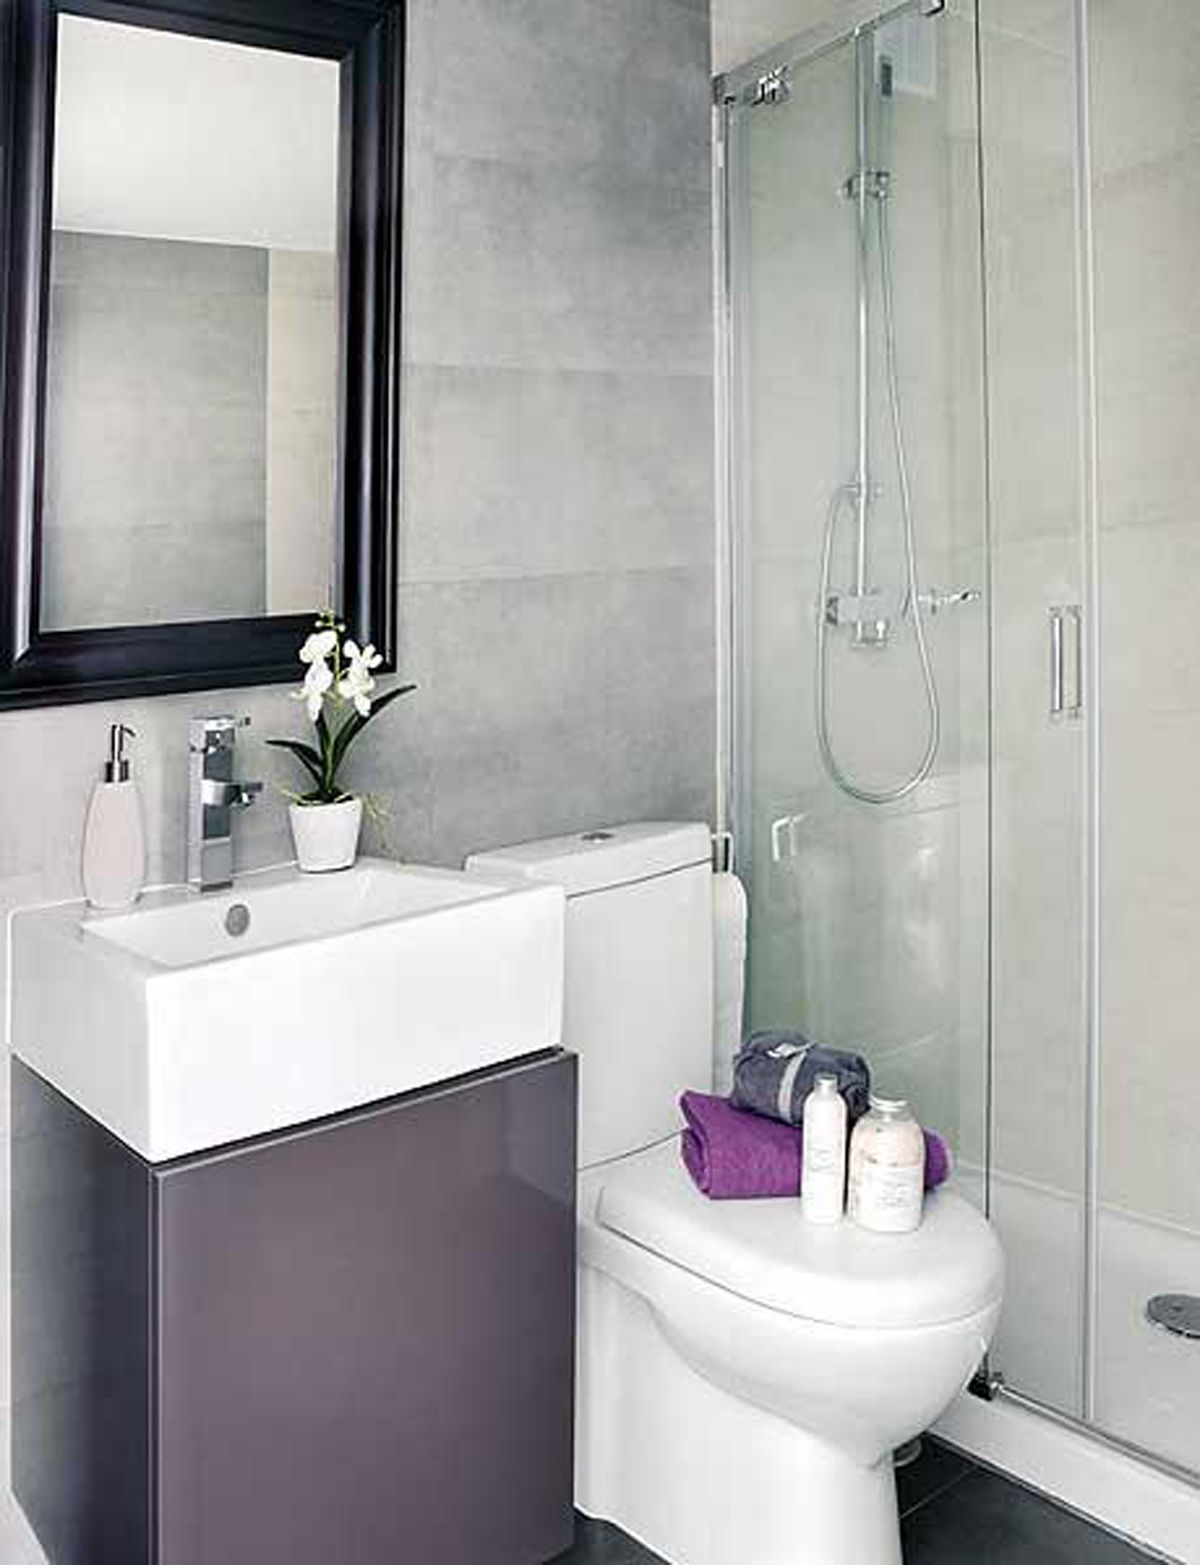 Design Tiny Bathroom Ideas intrinsic interior design applied in small apartment architecture 26 cool bathroom ideas with white water closet and glass shower wall mirror